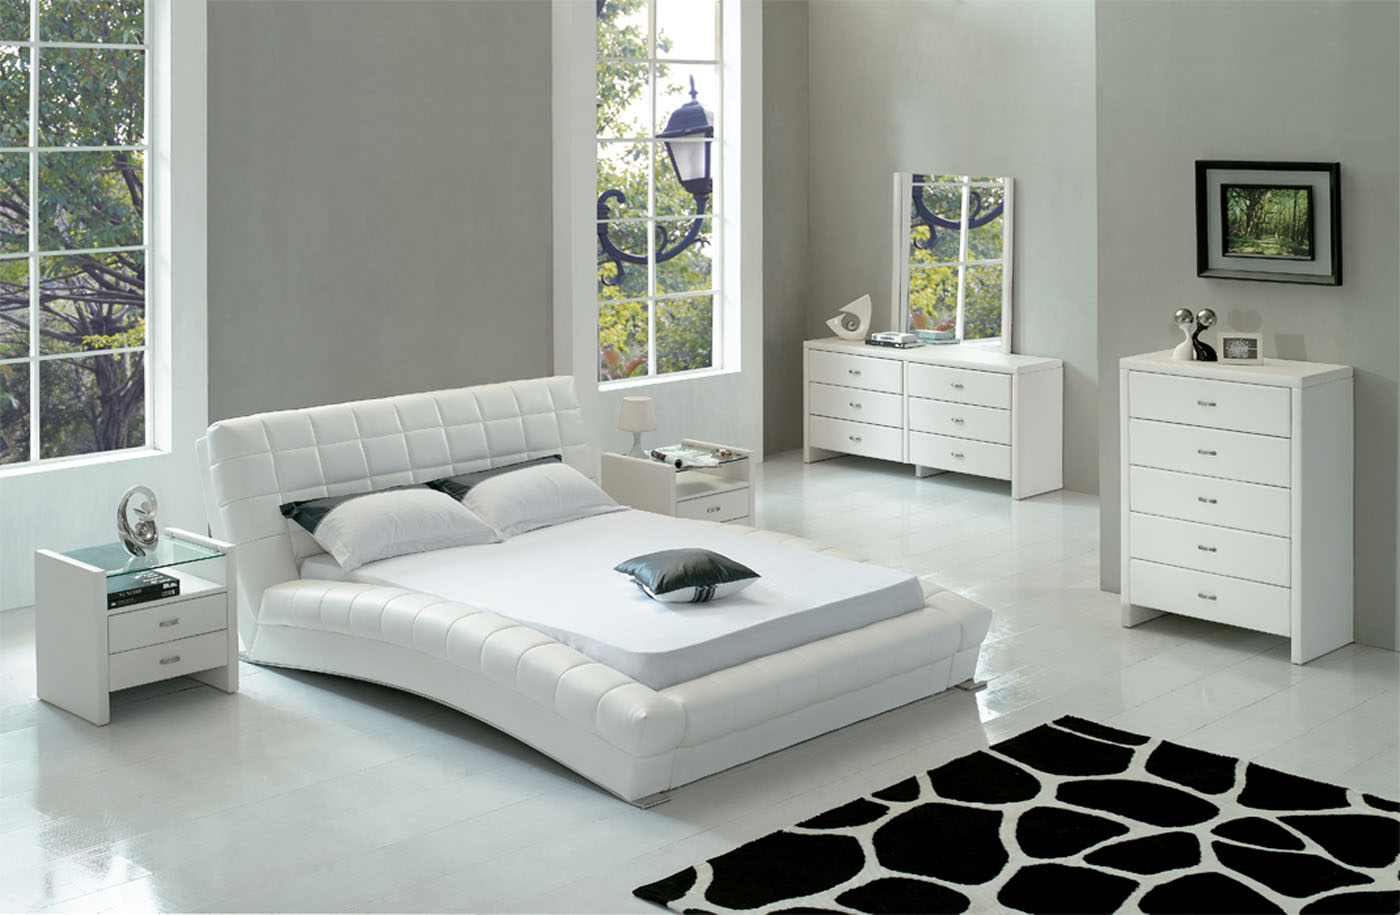 White Bedroom Furniture: The Special Simple